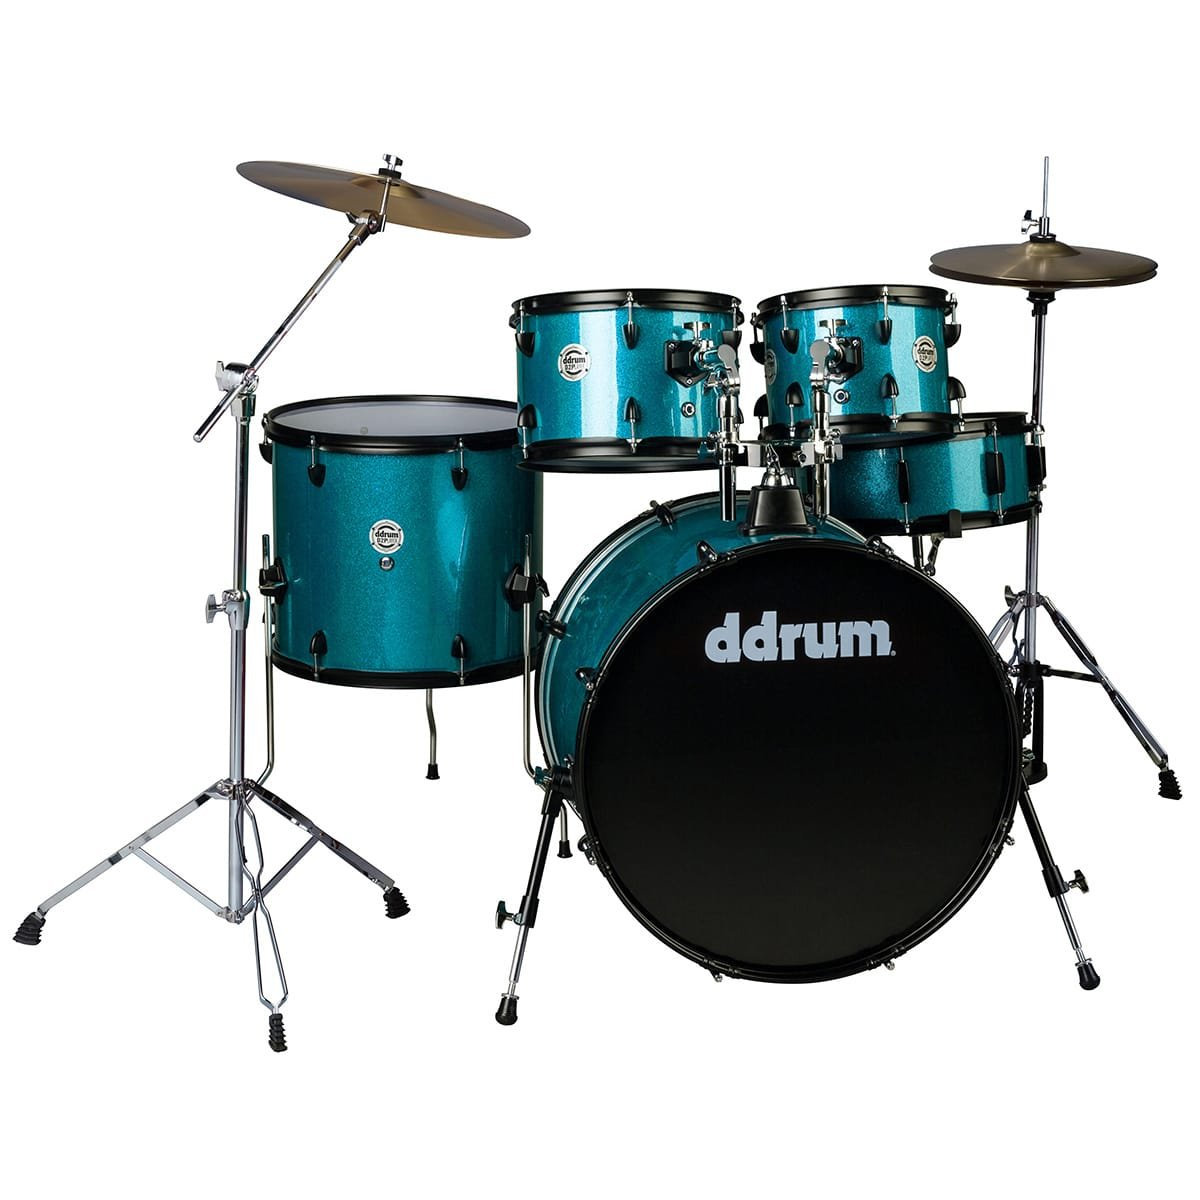 DDrum D2P-5pc- Blue Sparkle - Complete kit